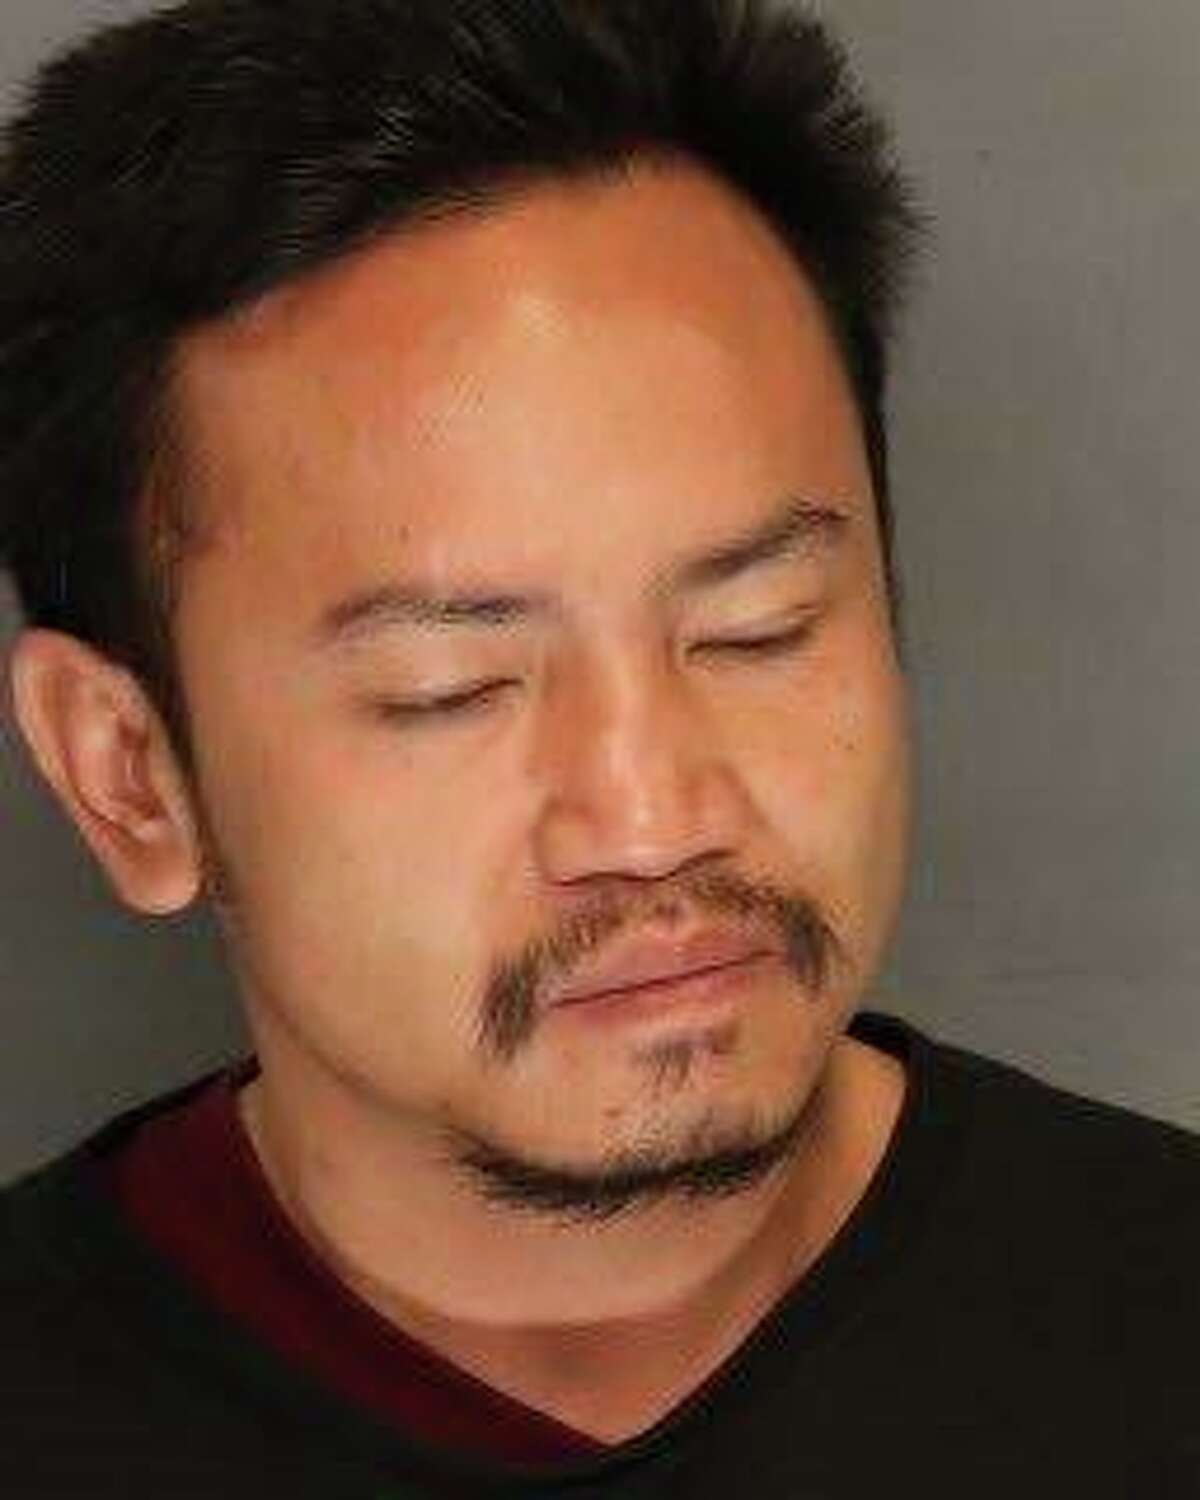 On March 7, 2019, at 4:43 am, Cuong Pham, 38, was arrested for attempted homicide and arson, according to the Stockton Police Department.